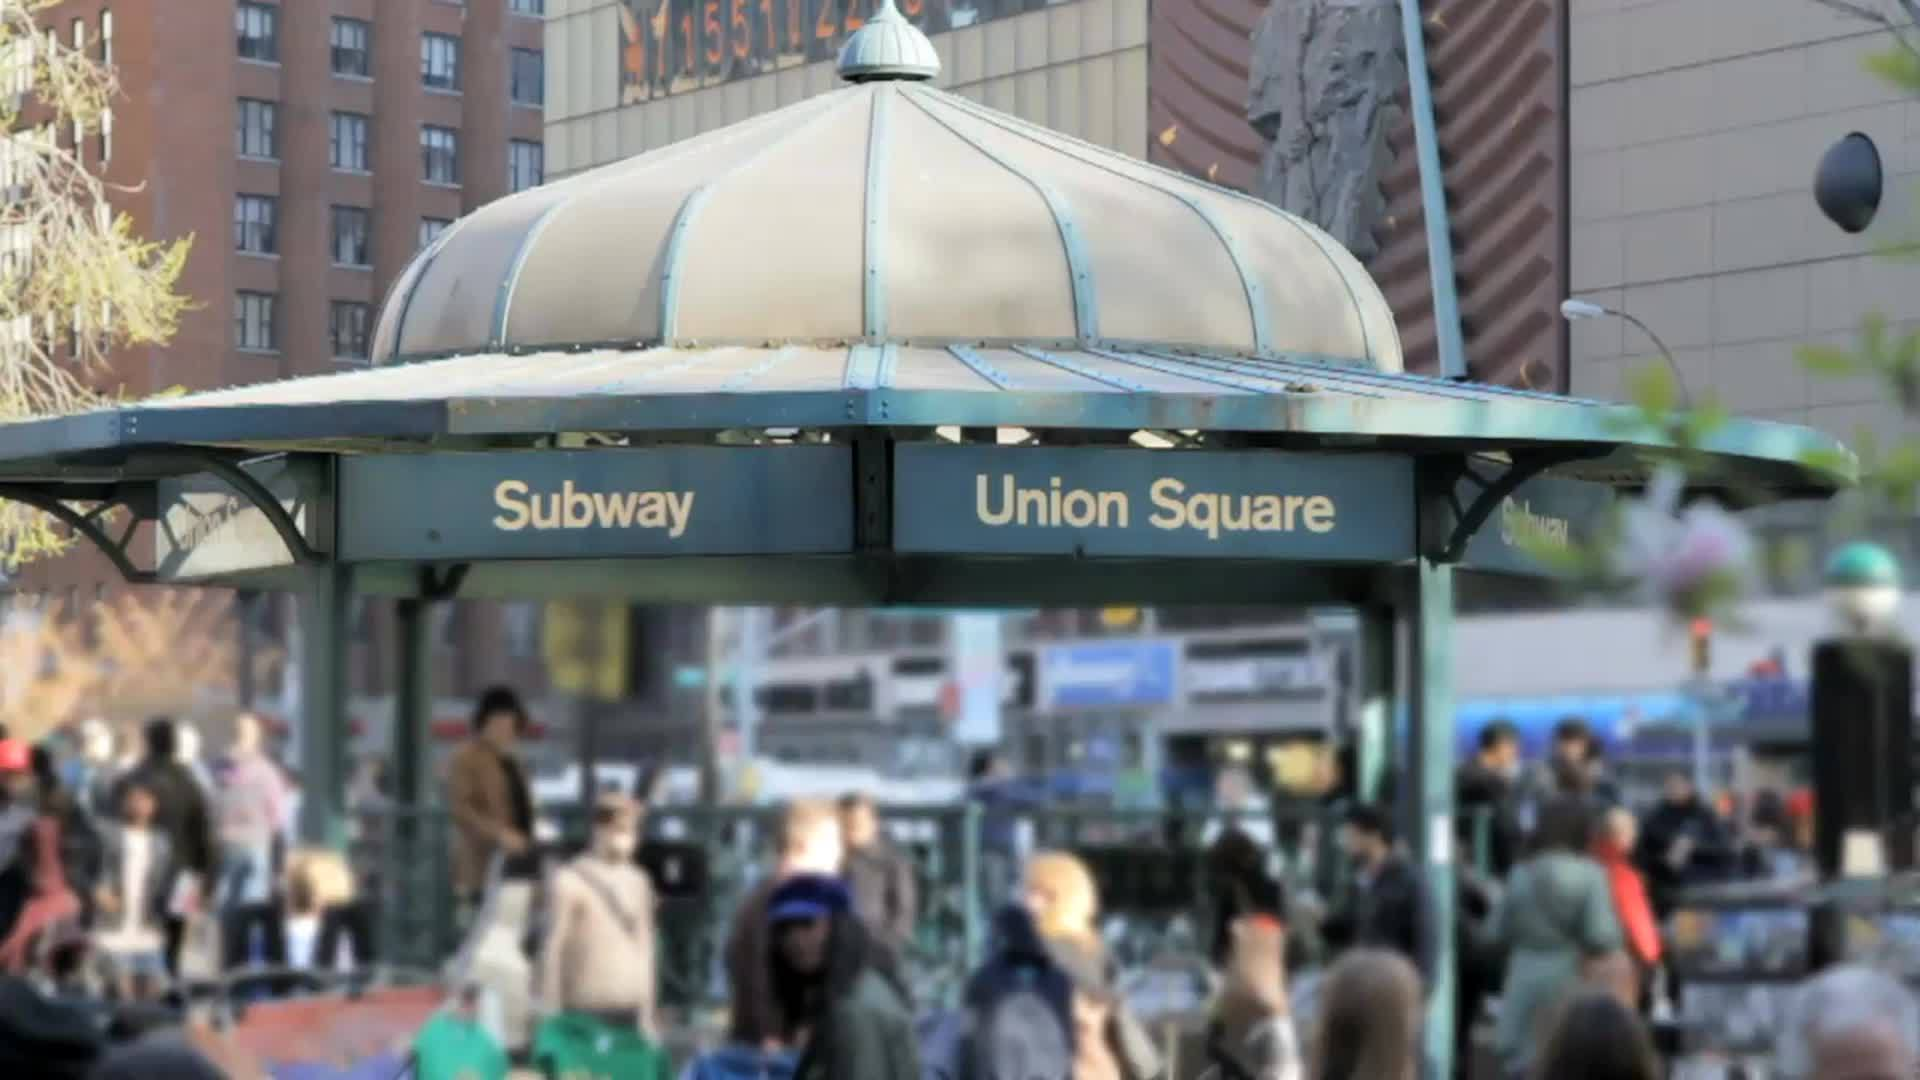 Union Square subway train station sign crowded entrance with people outside